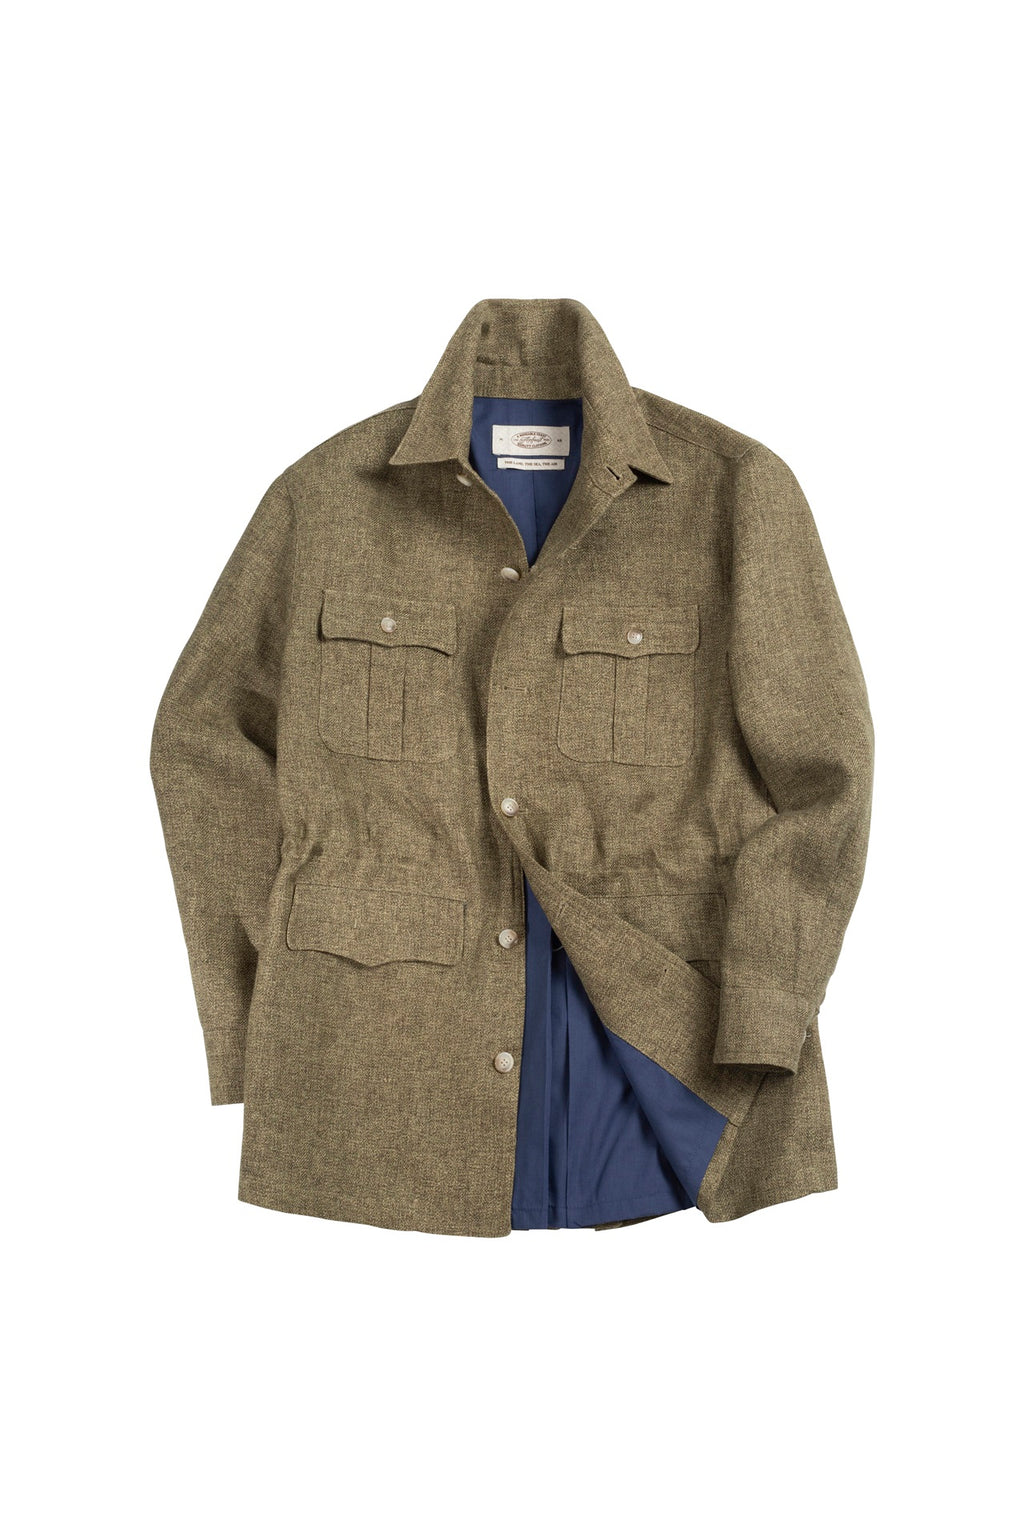 2020 SS LINEN SAFARI JACKET